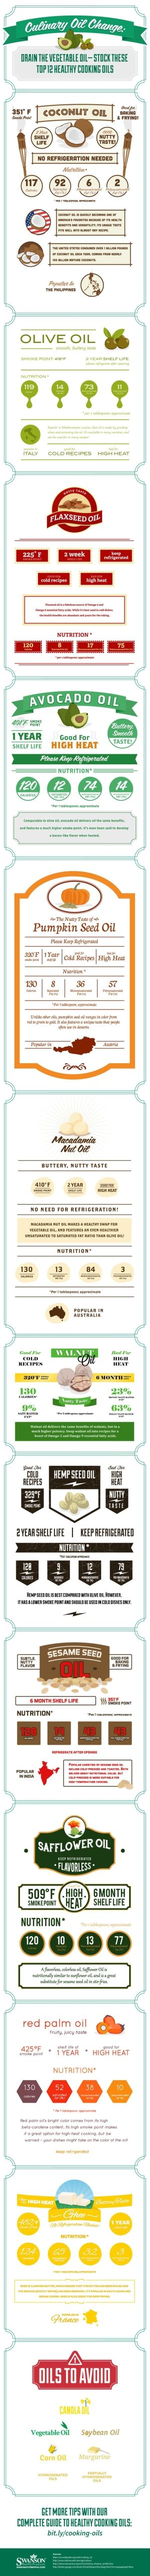 TOP HEALTHY COOKING OILS INFOGRAPHIC – A complete comparison guide to the top healthy cooking oils—health benefits, tips, recipes & video demos. by MistyLane